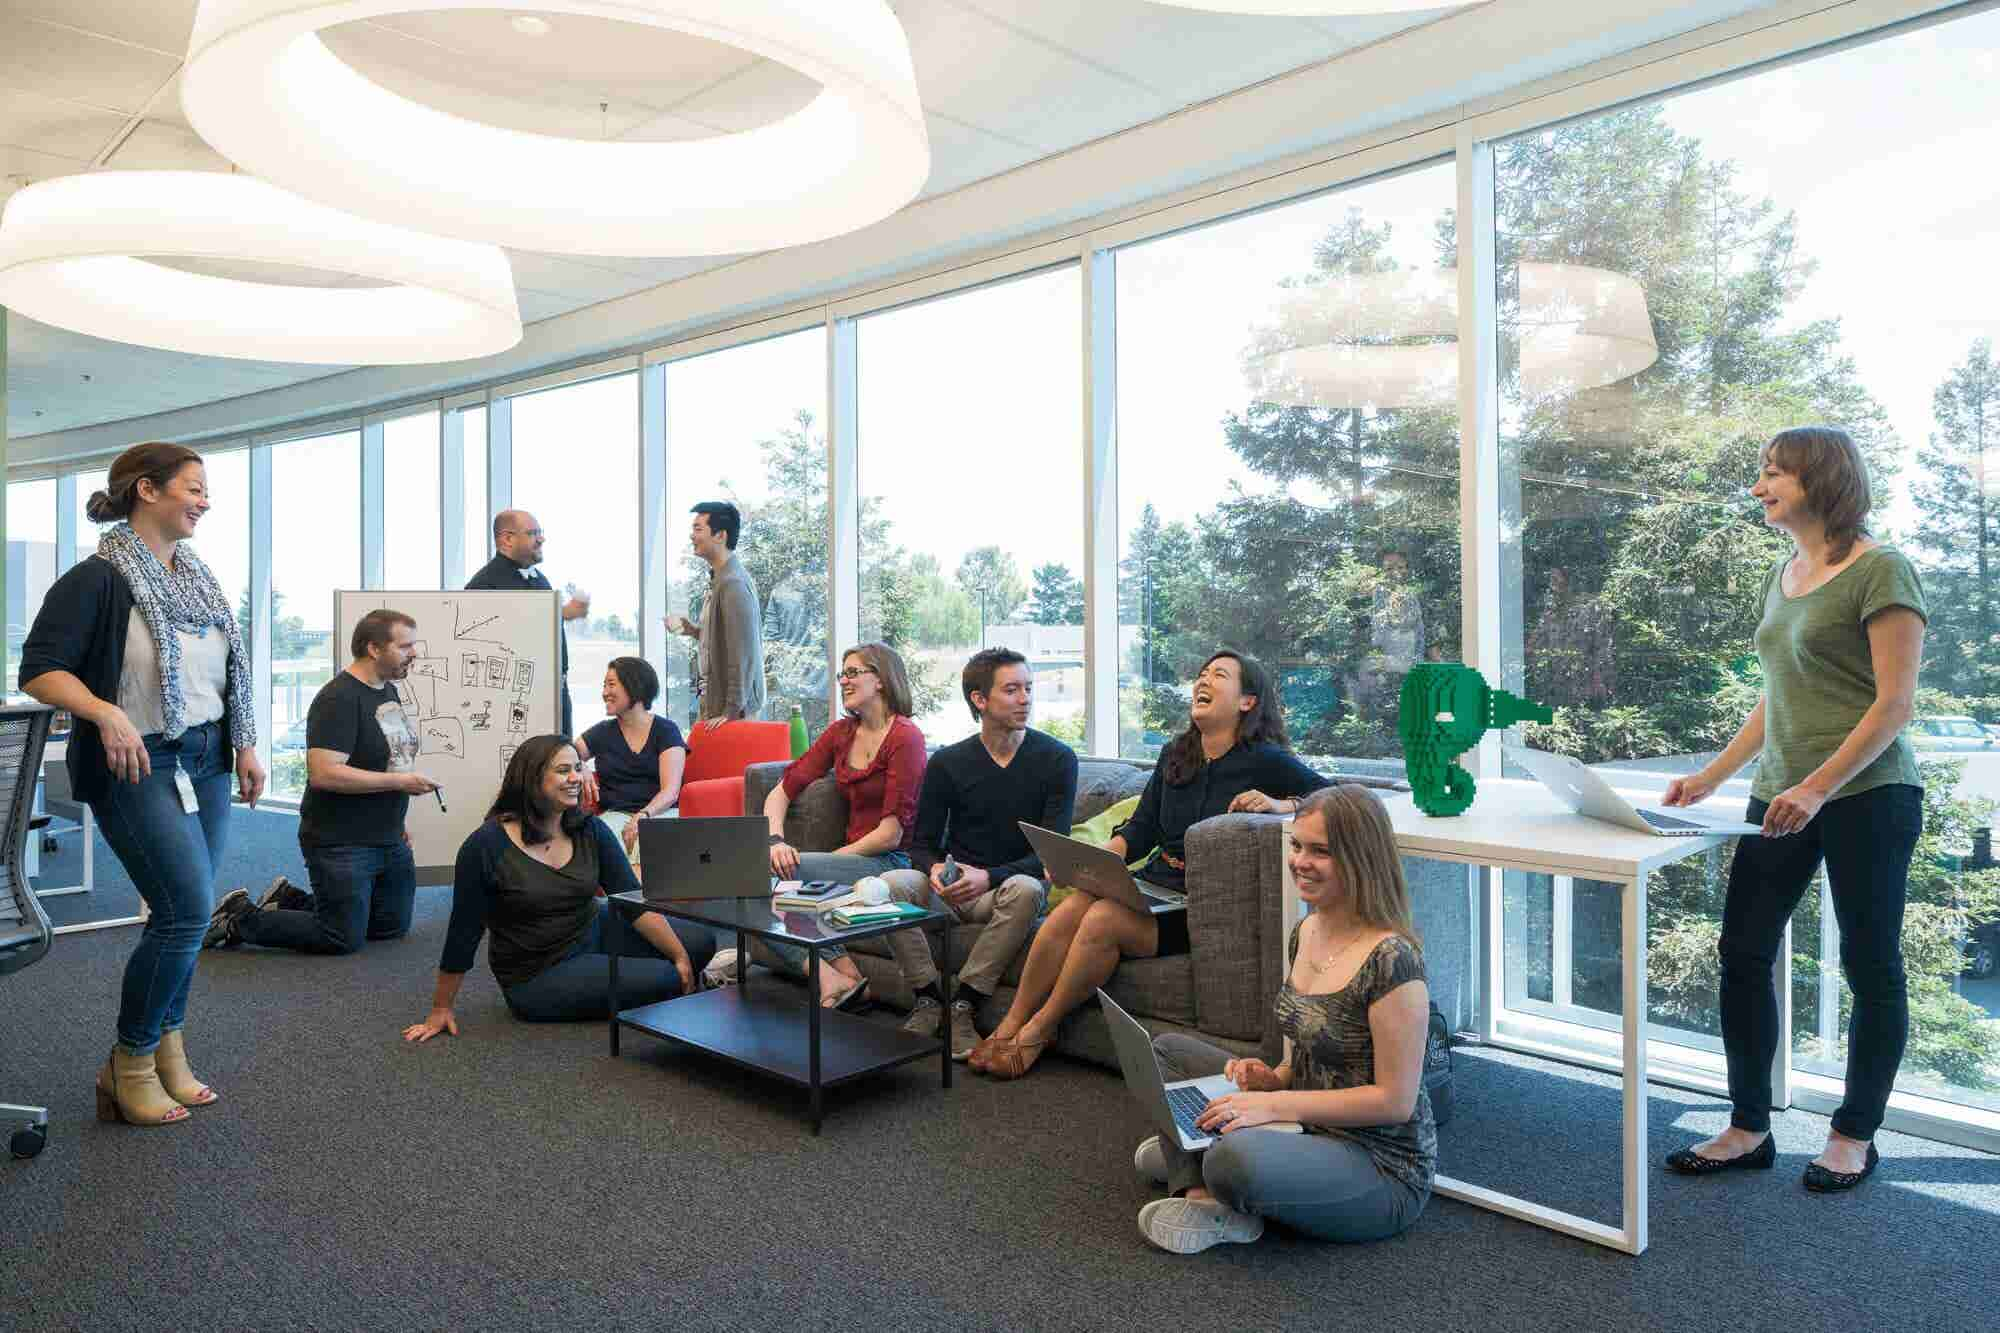 Evernote's Silicon Valley Headquarters Offer Company-Wide Collaboration (and Lego-Building Classes)